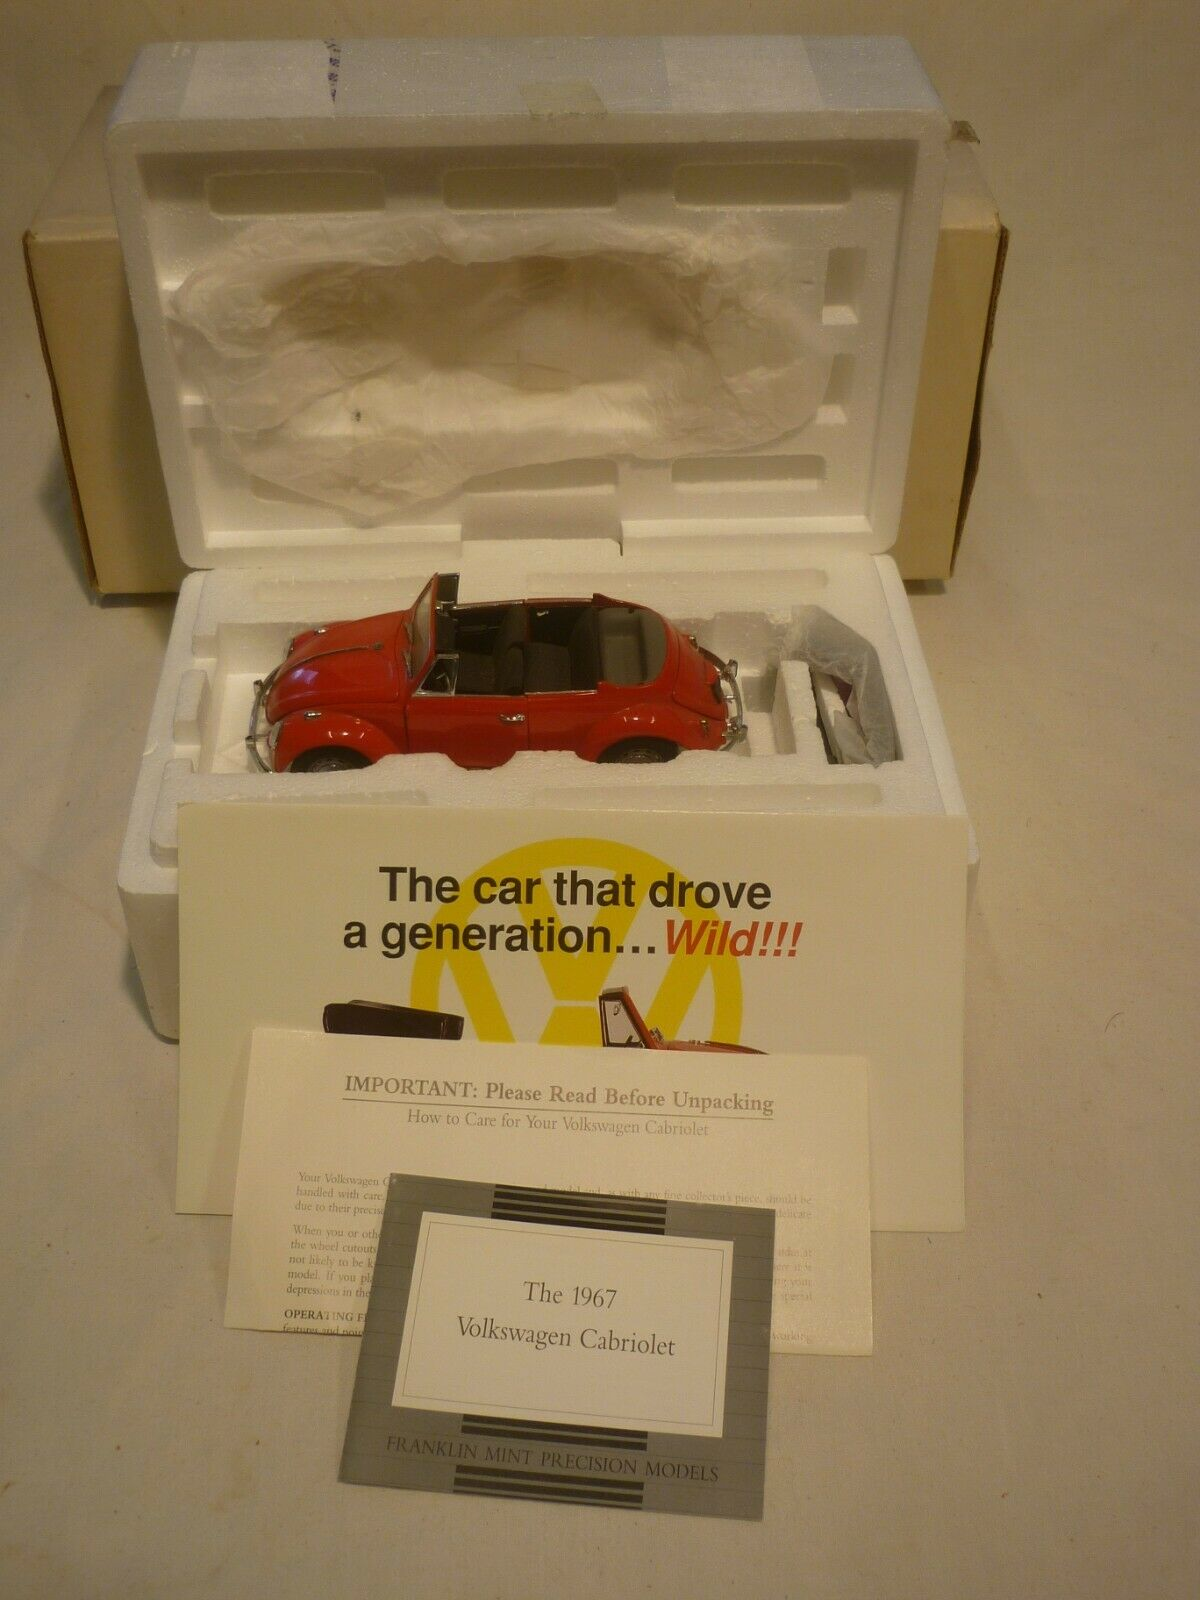 A Franklin mint scale model of a 1967 Volkswagen Beetle congreenible, boxed